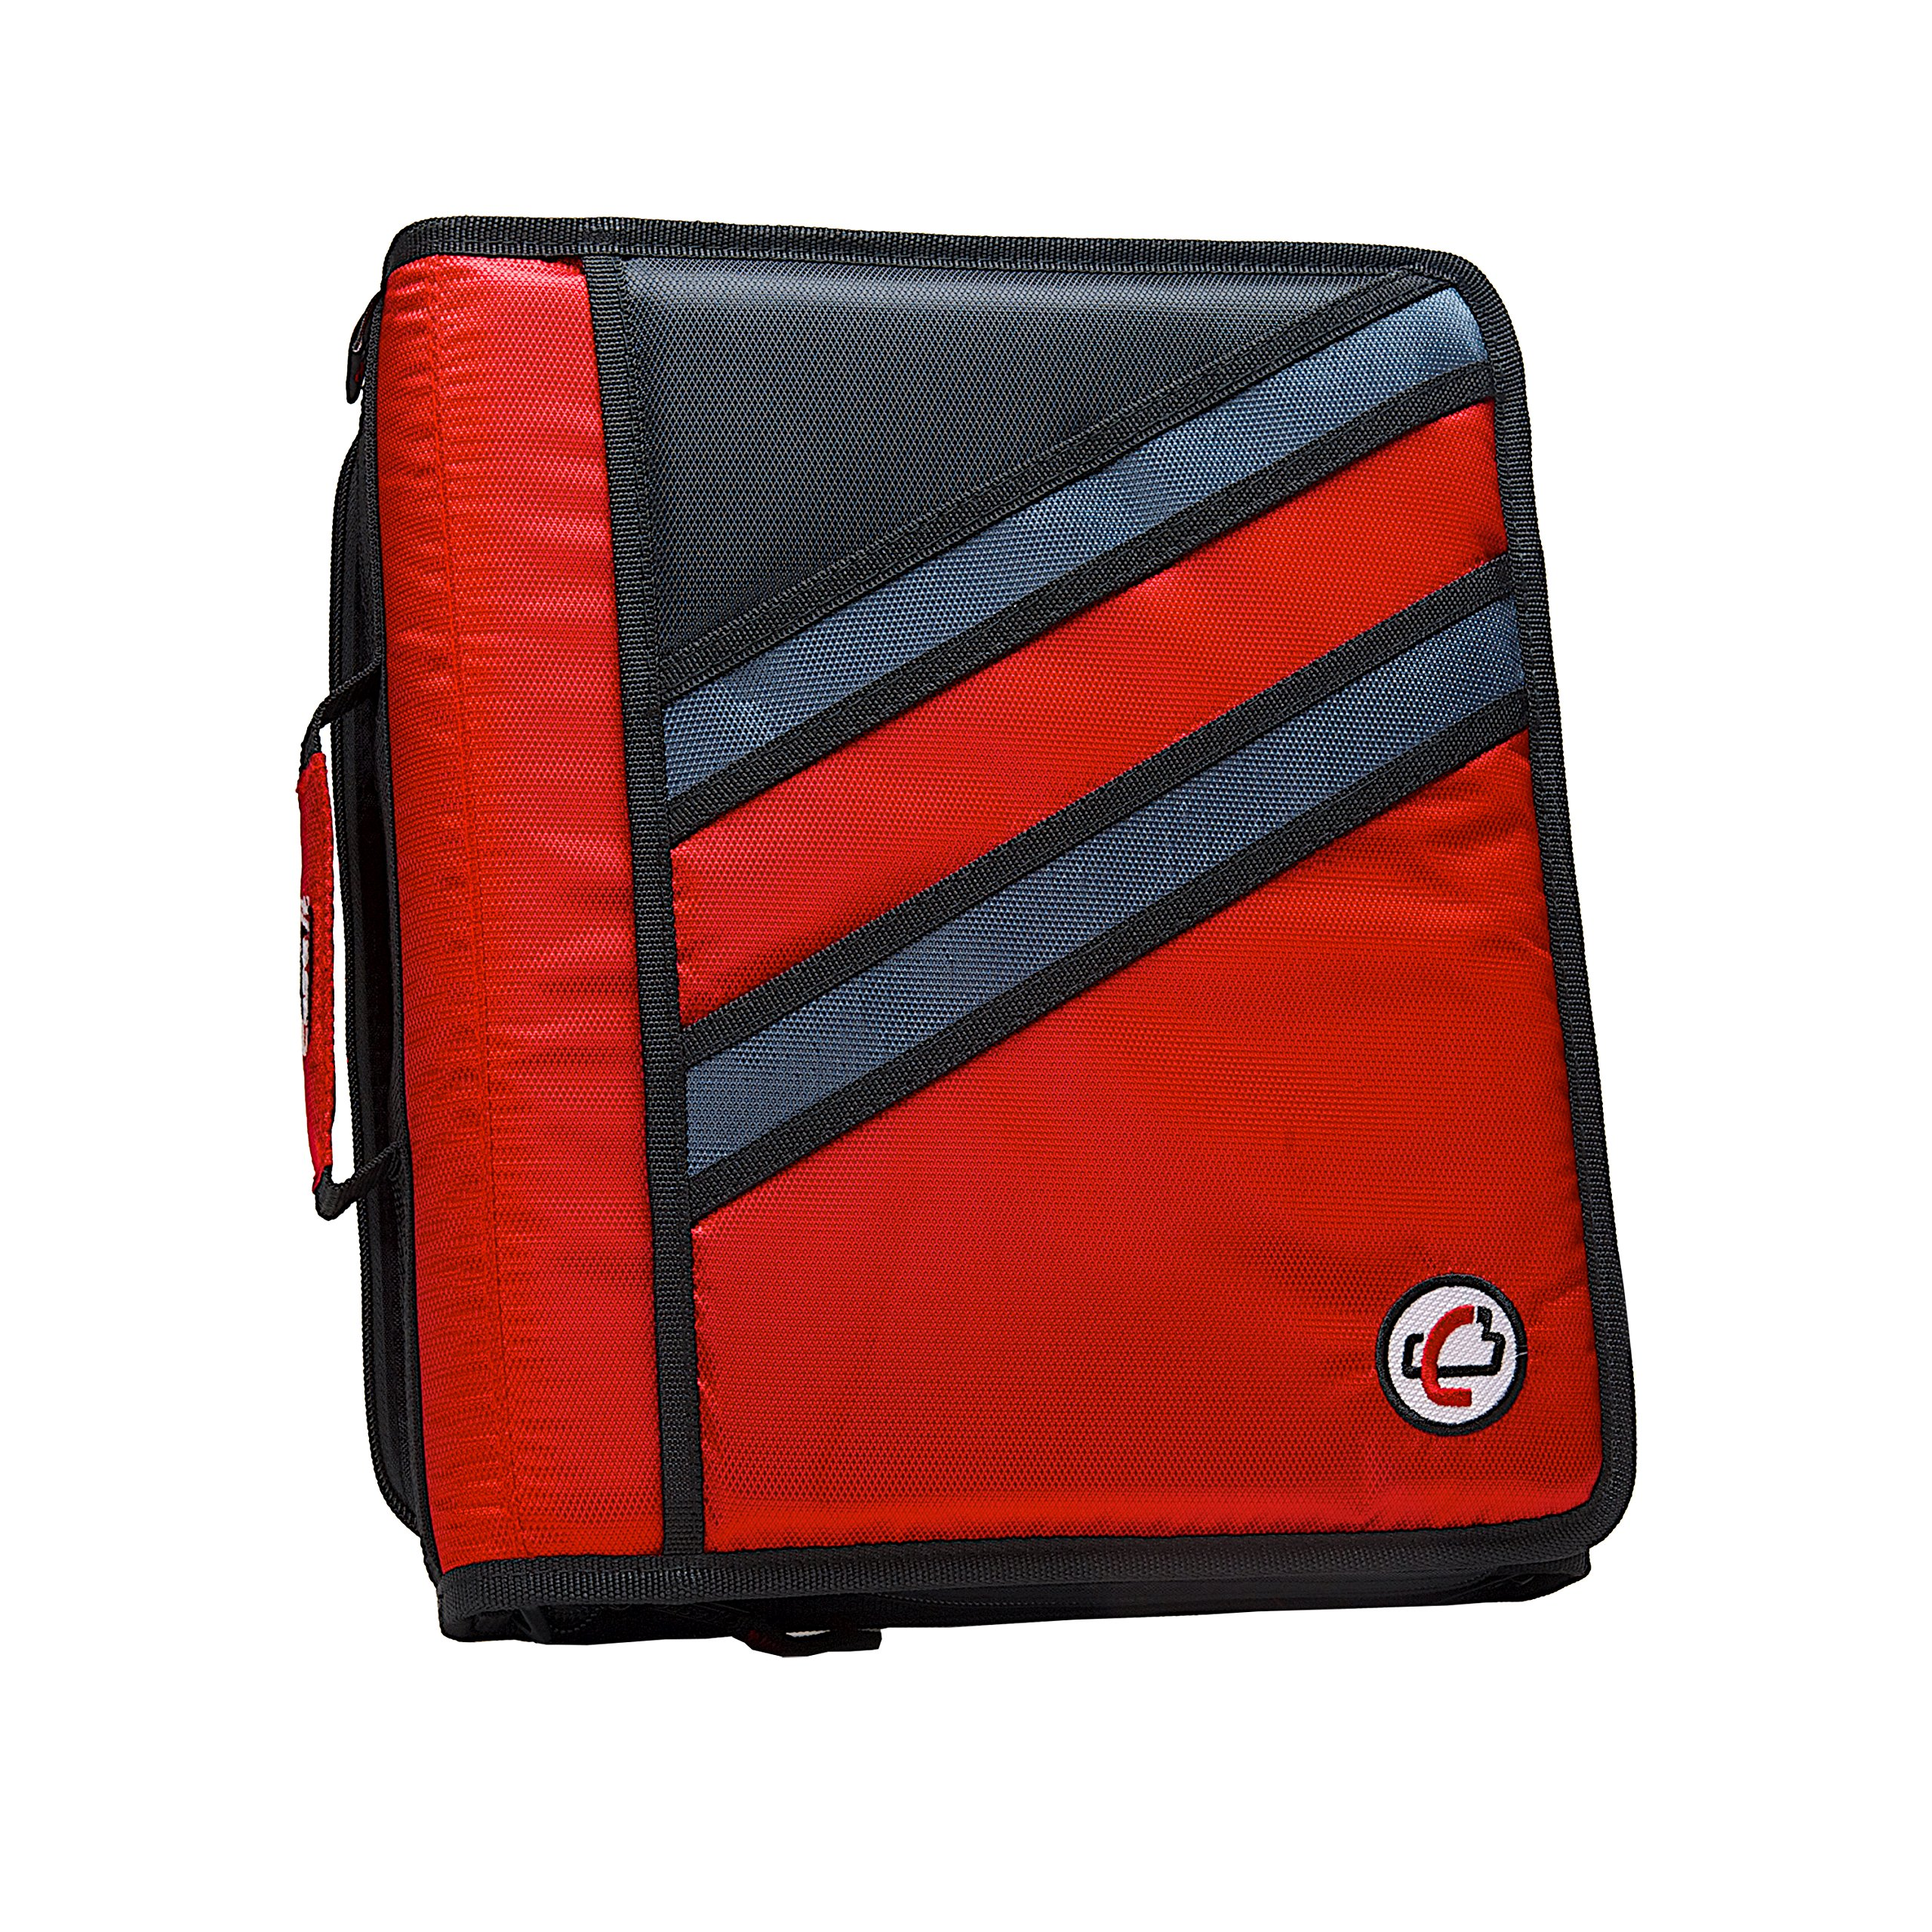 Case-it Z-Binder Two-in-One 1.5-Inch D-Ring Zipper Binders, Red, Z-176-RED